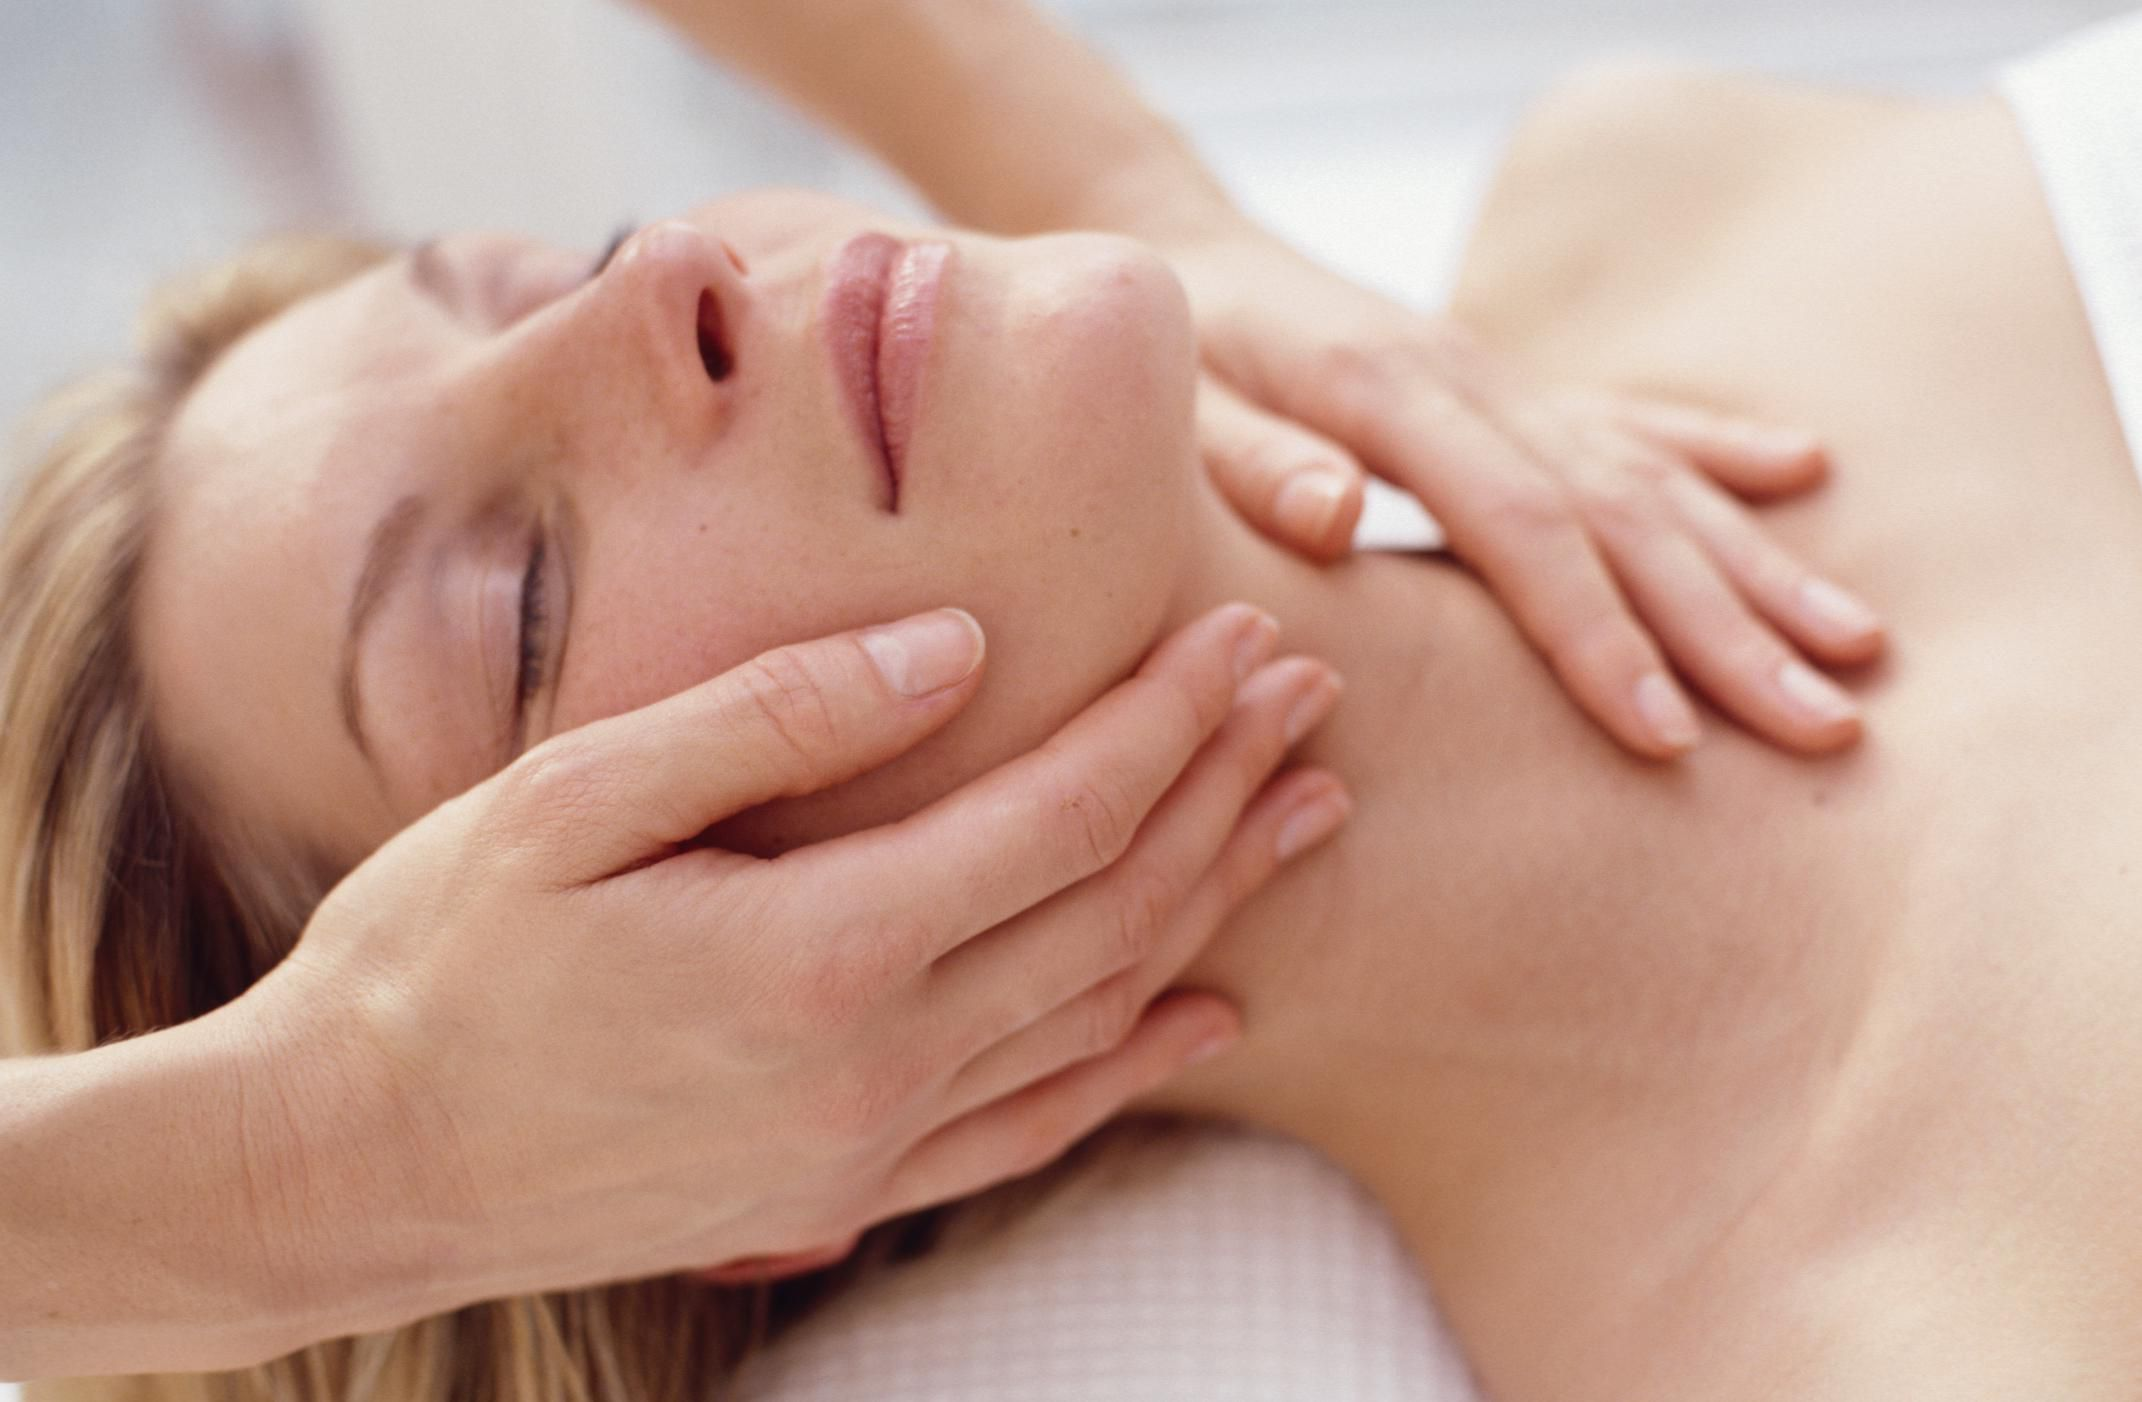 image Manual lymphatic drainage with suction cups 2